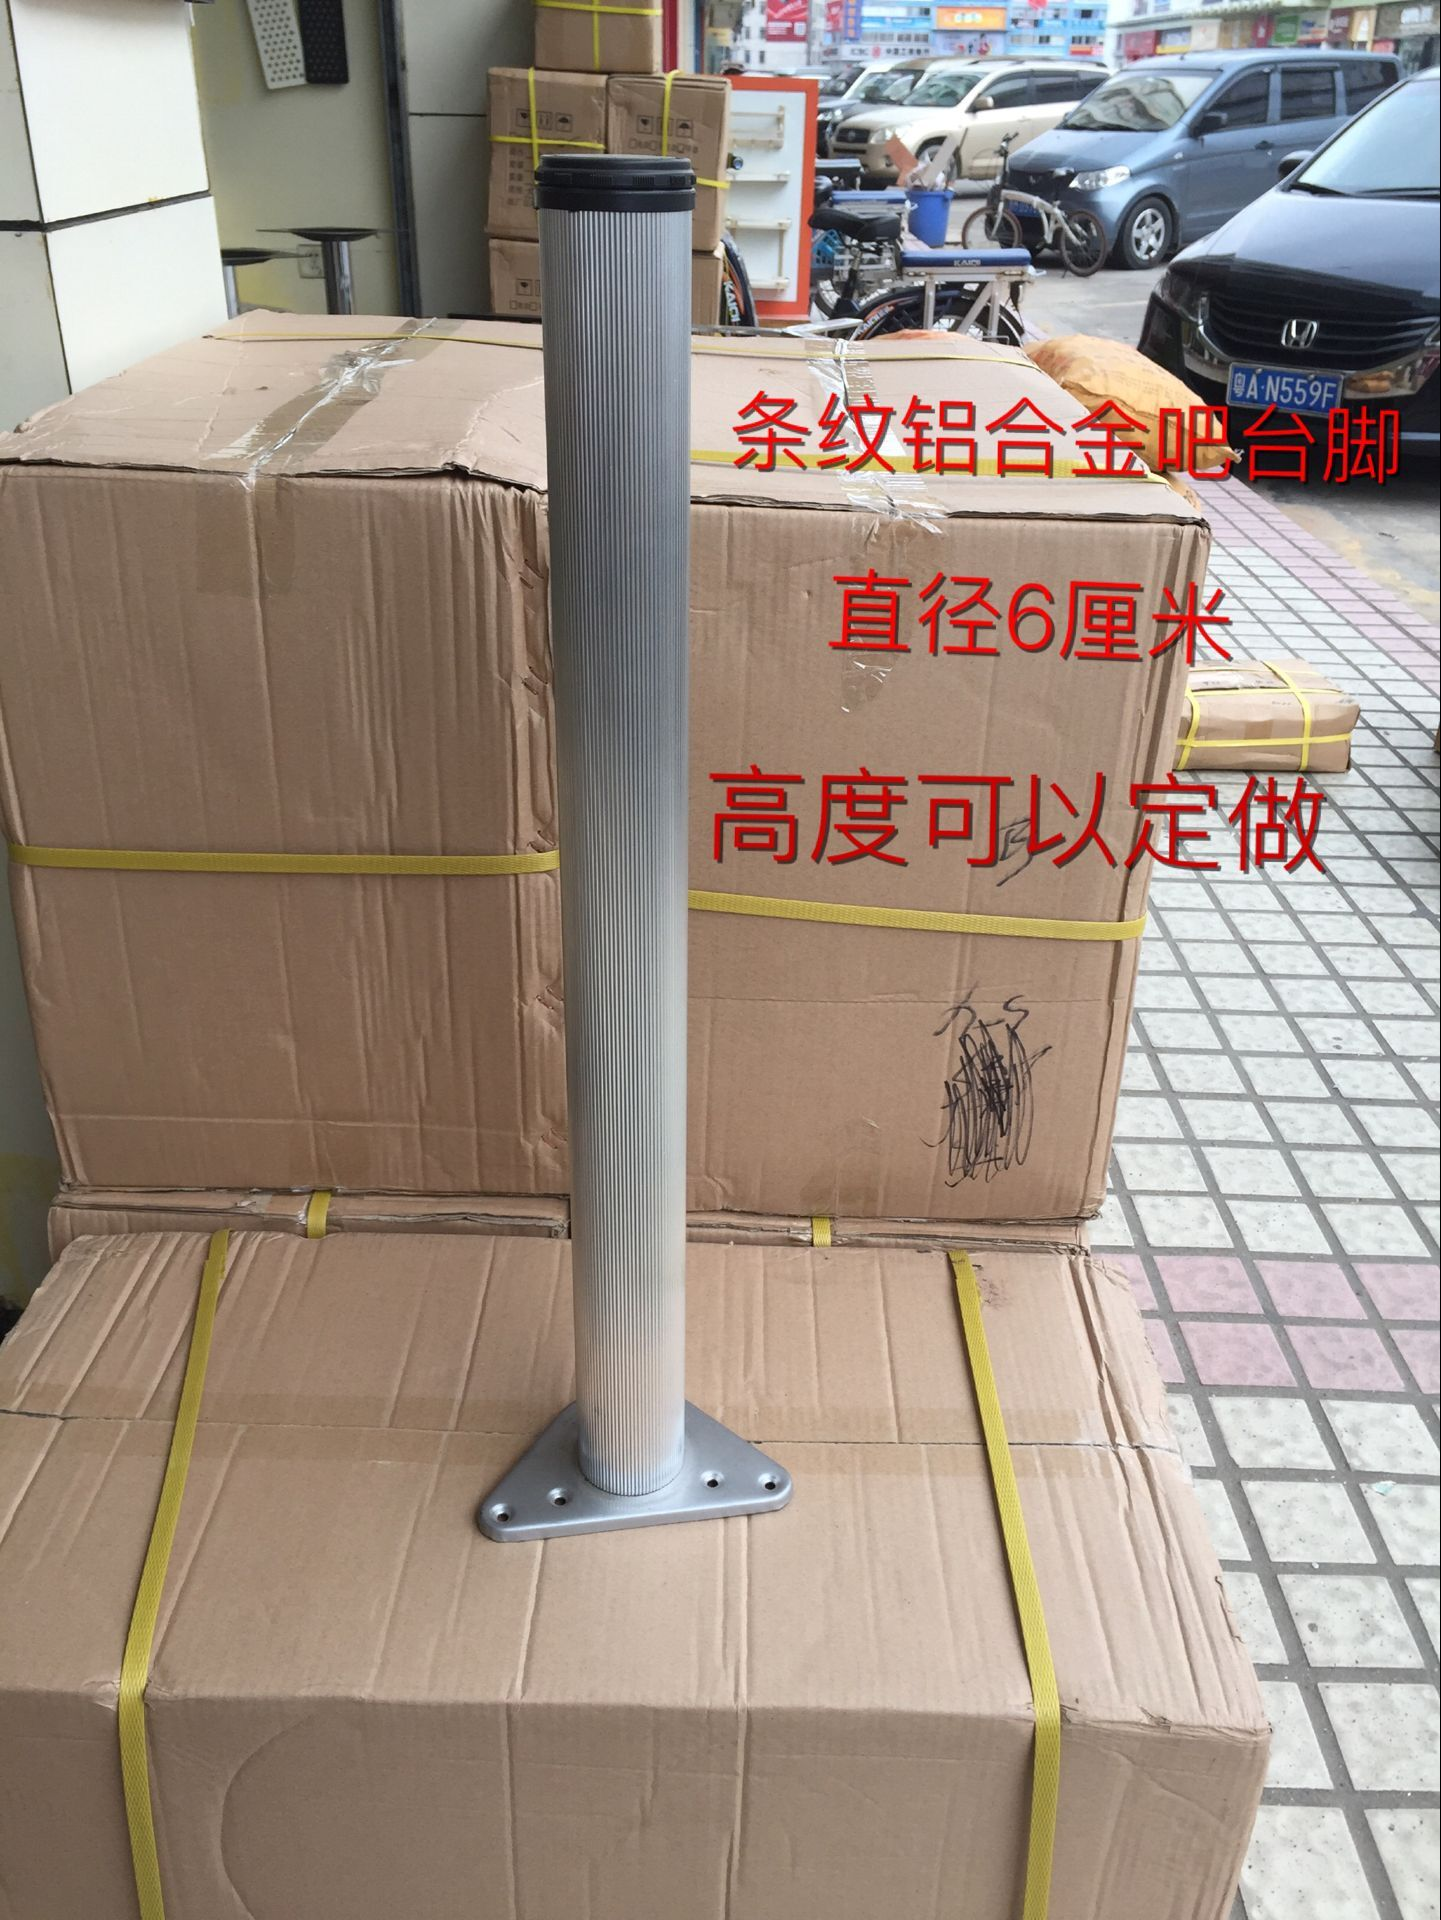 Usd 8 85 Aluminum Adjustable Cabinet Leg Bar Bar Post Heavy Duty Countertop Support Leg Support Bar Cabinet Feet Can Be Customized Table Feet Wholesale From China Online Shopping Buy Asian Products